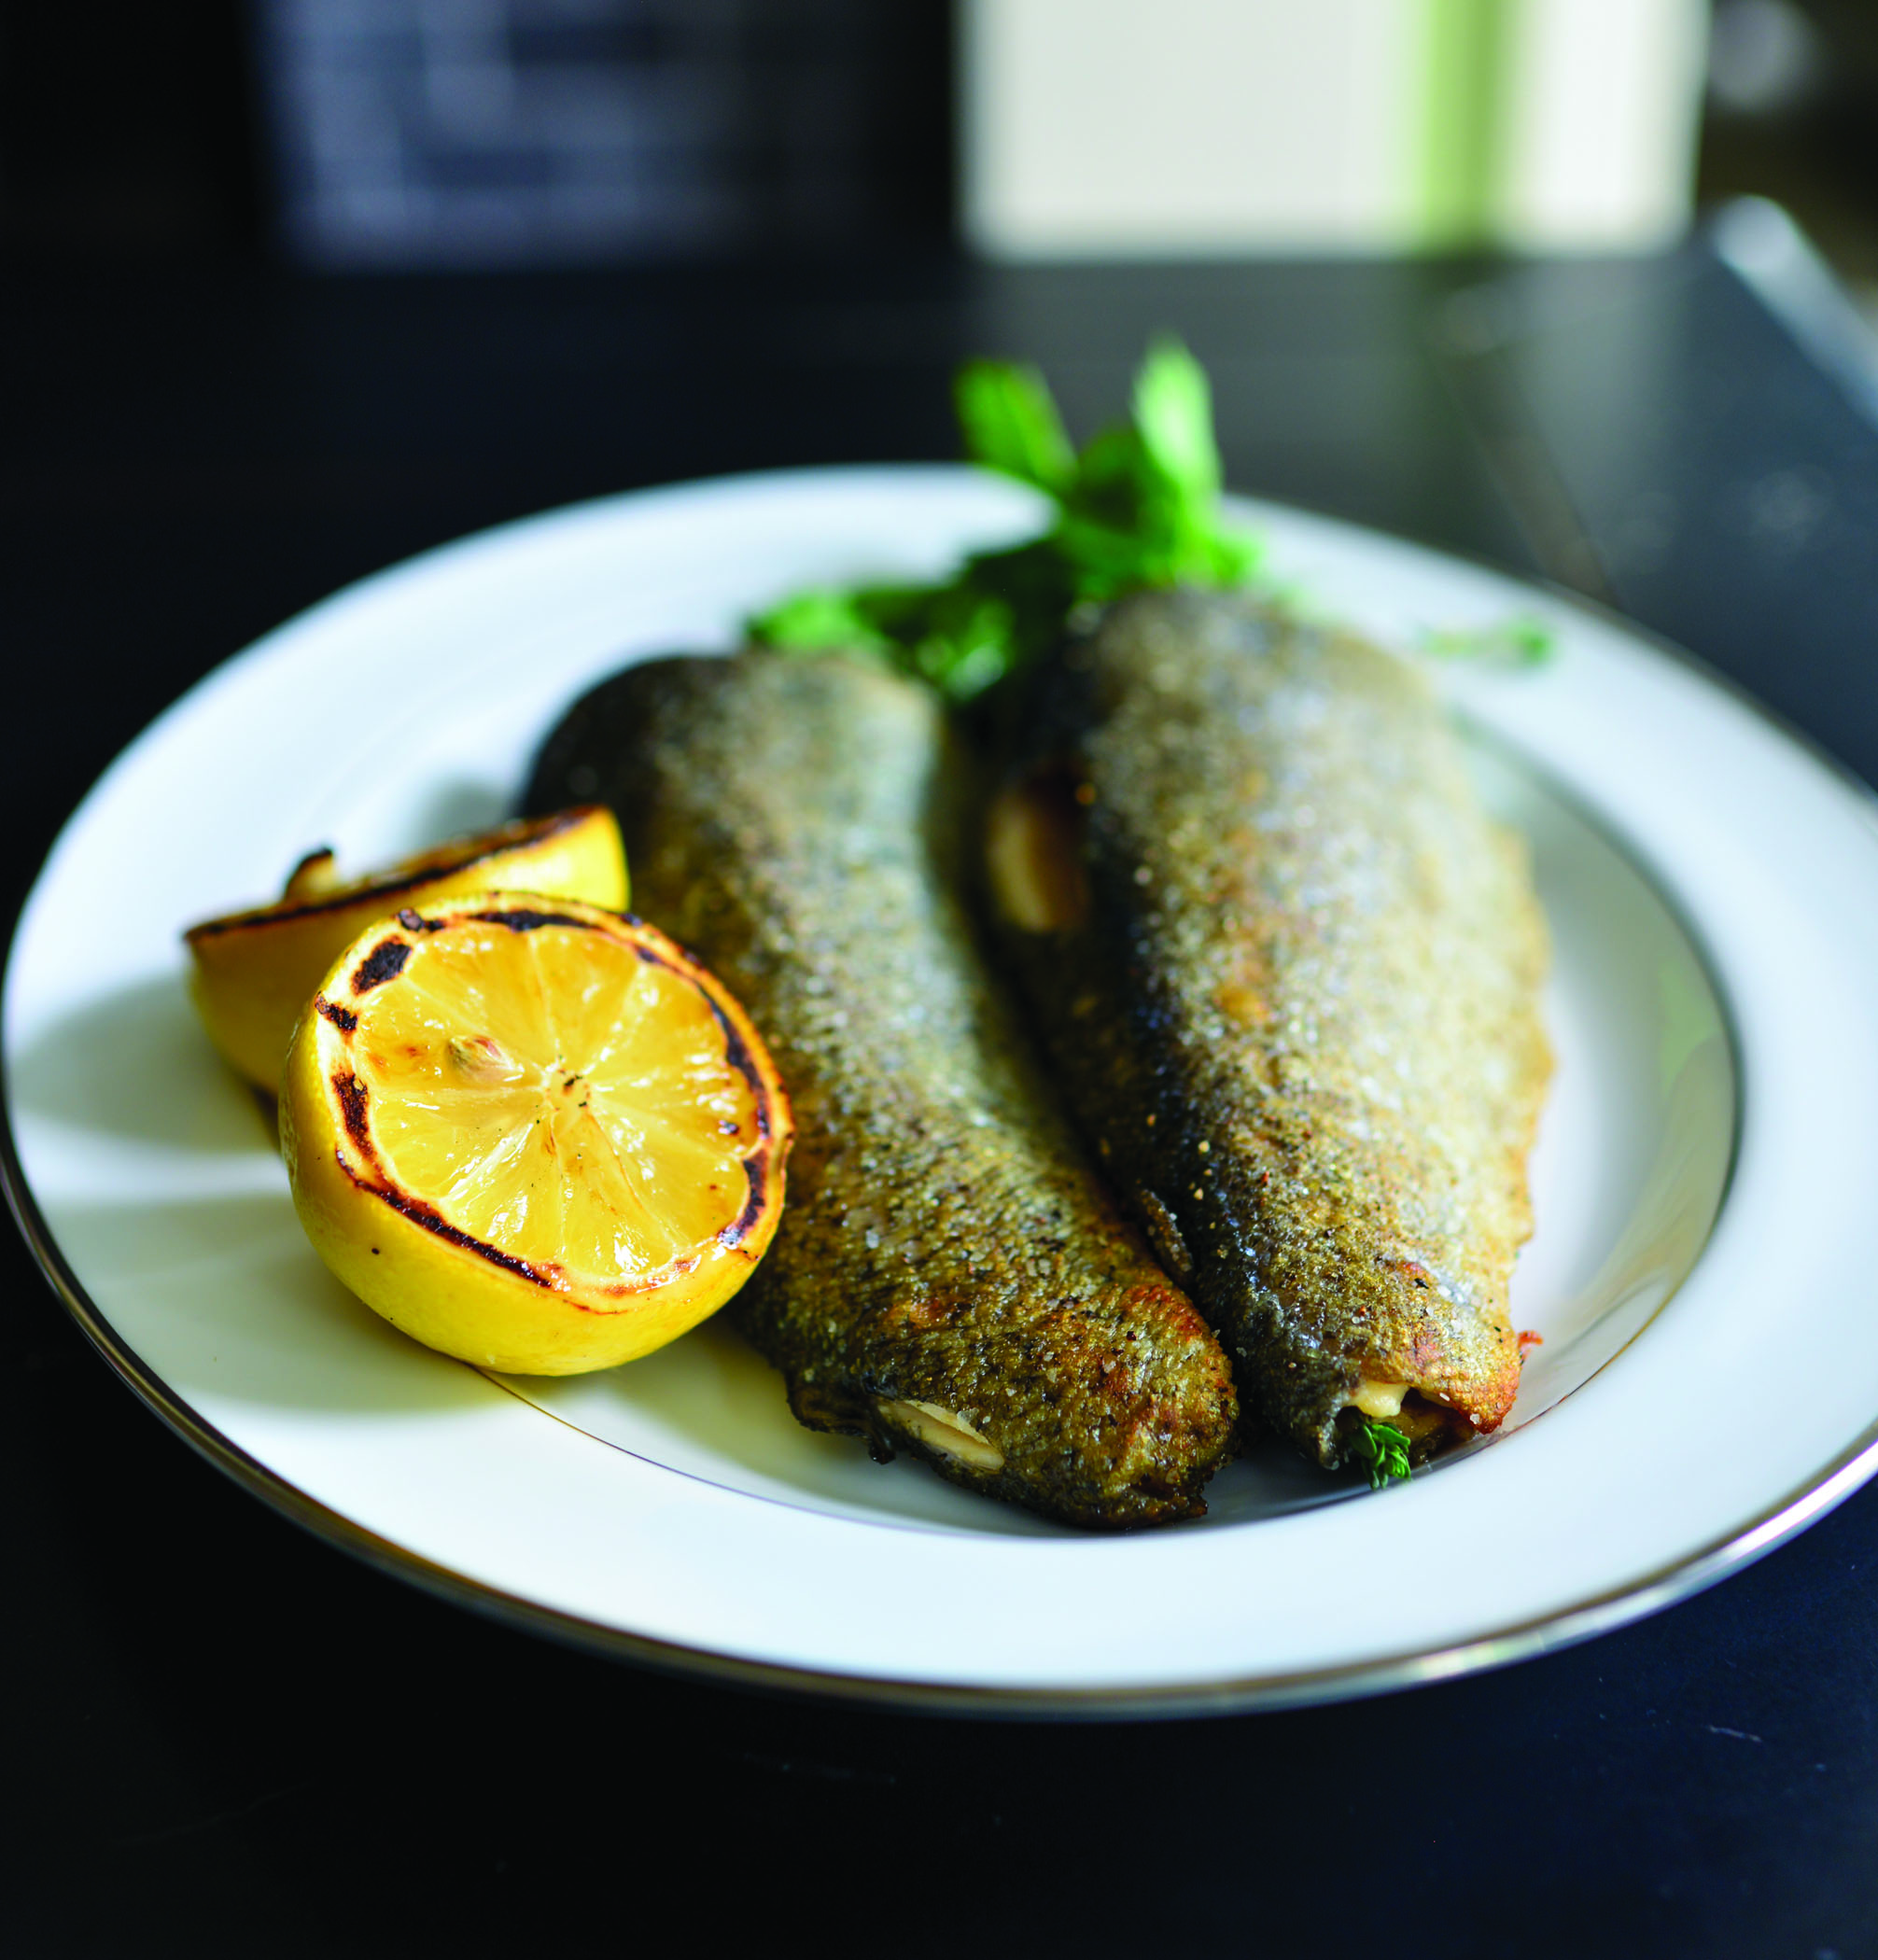 Grilled Trout. Photo by Bonjwing Lee